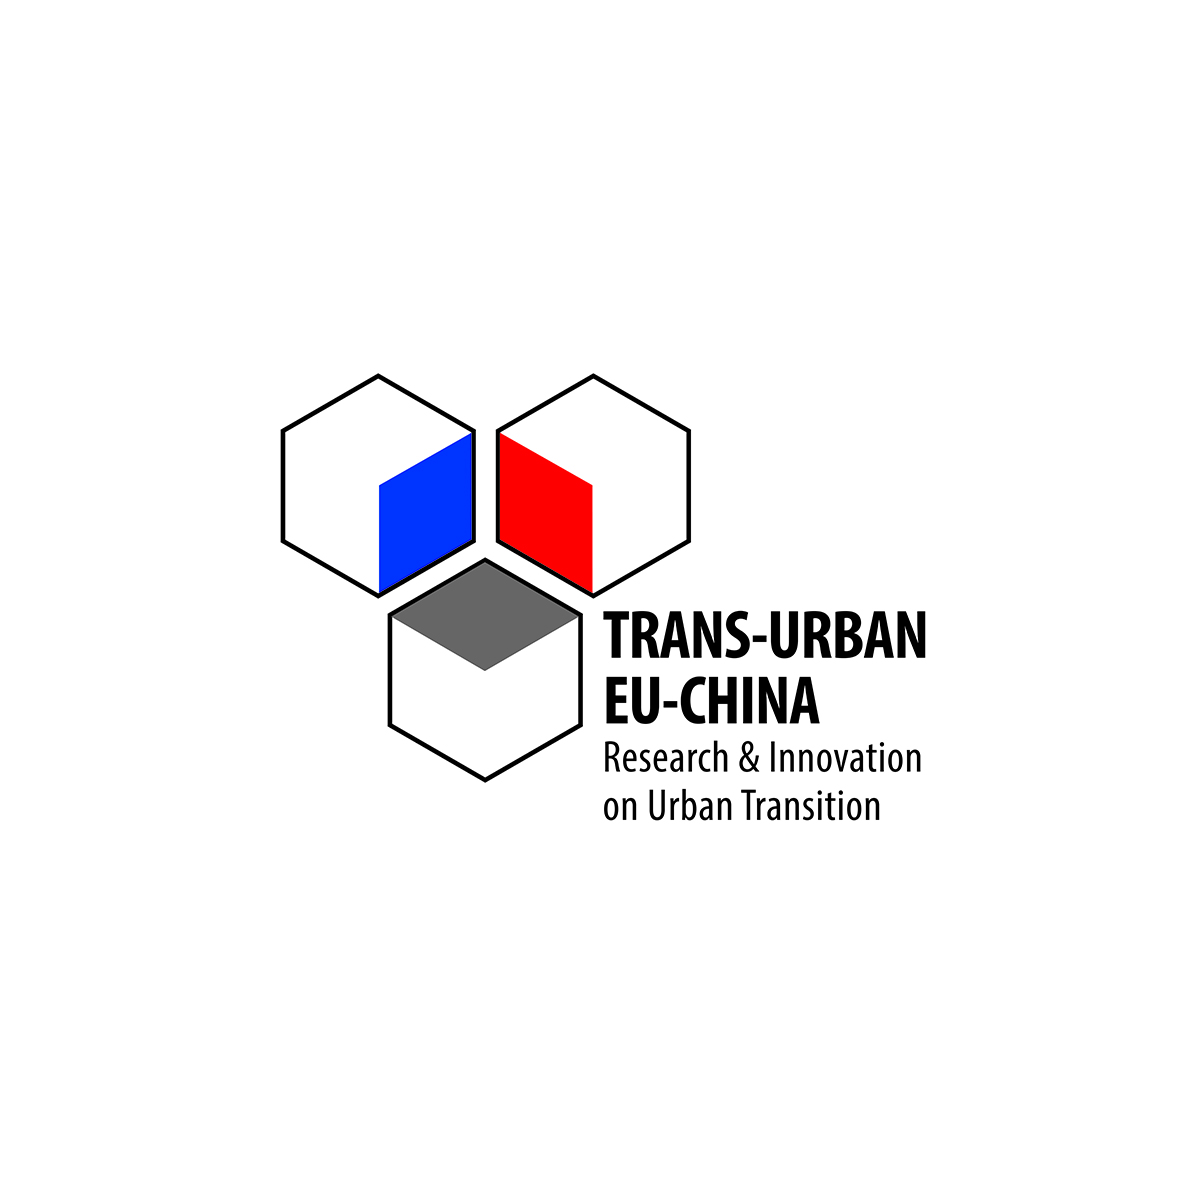 Logo_TRANS-URBAN-EU-CHINA